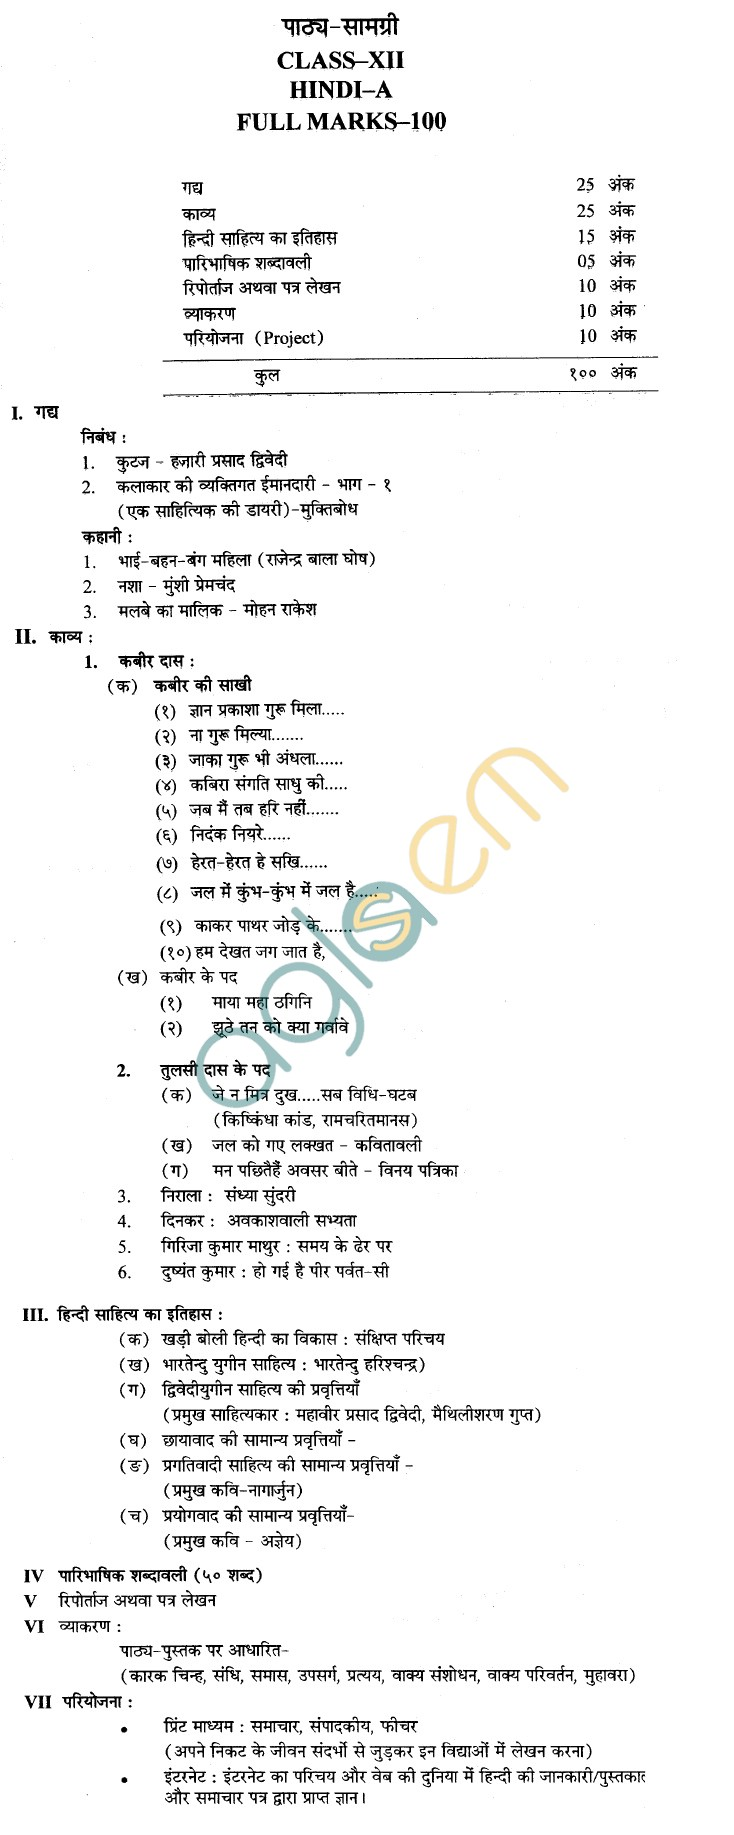 West Bengal Board Syllabus for Class 12 - Hindi A